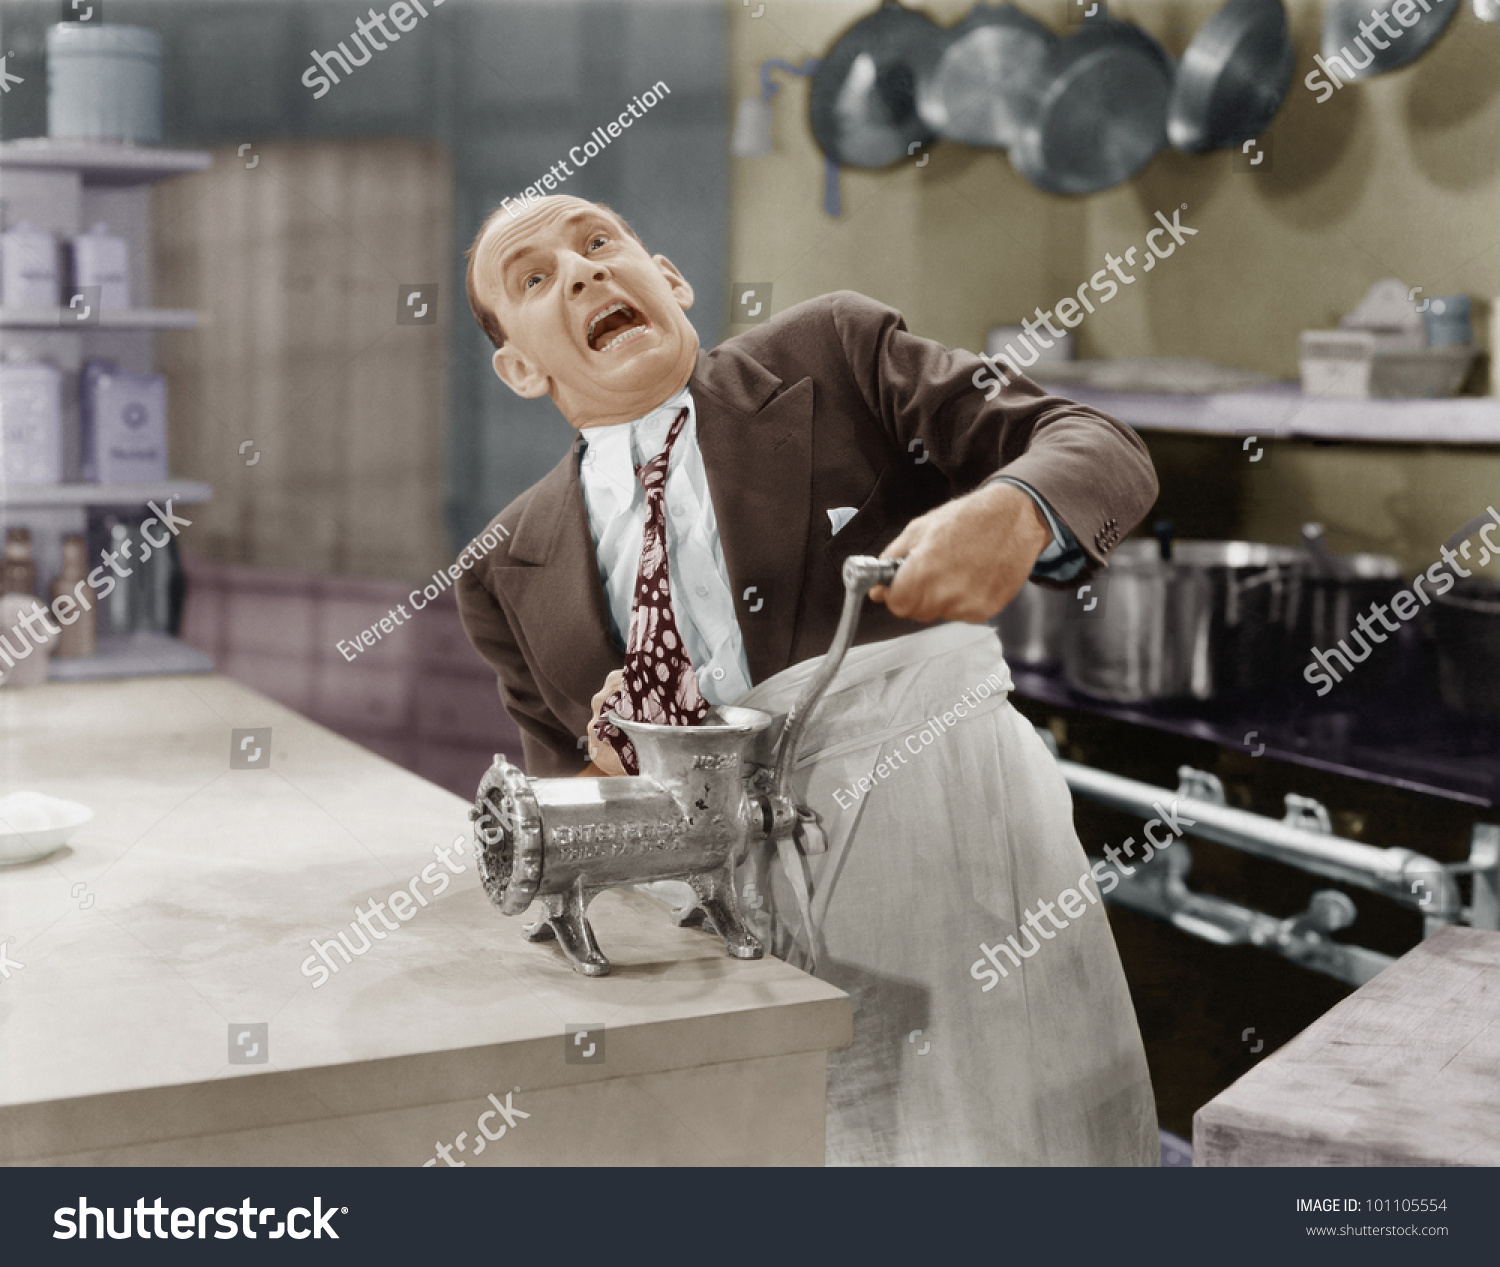 Man Tie Stuck Meat Grinder Stock Photo 101105554